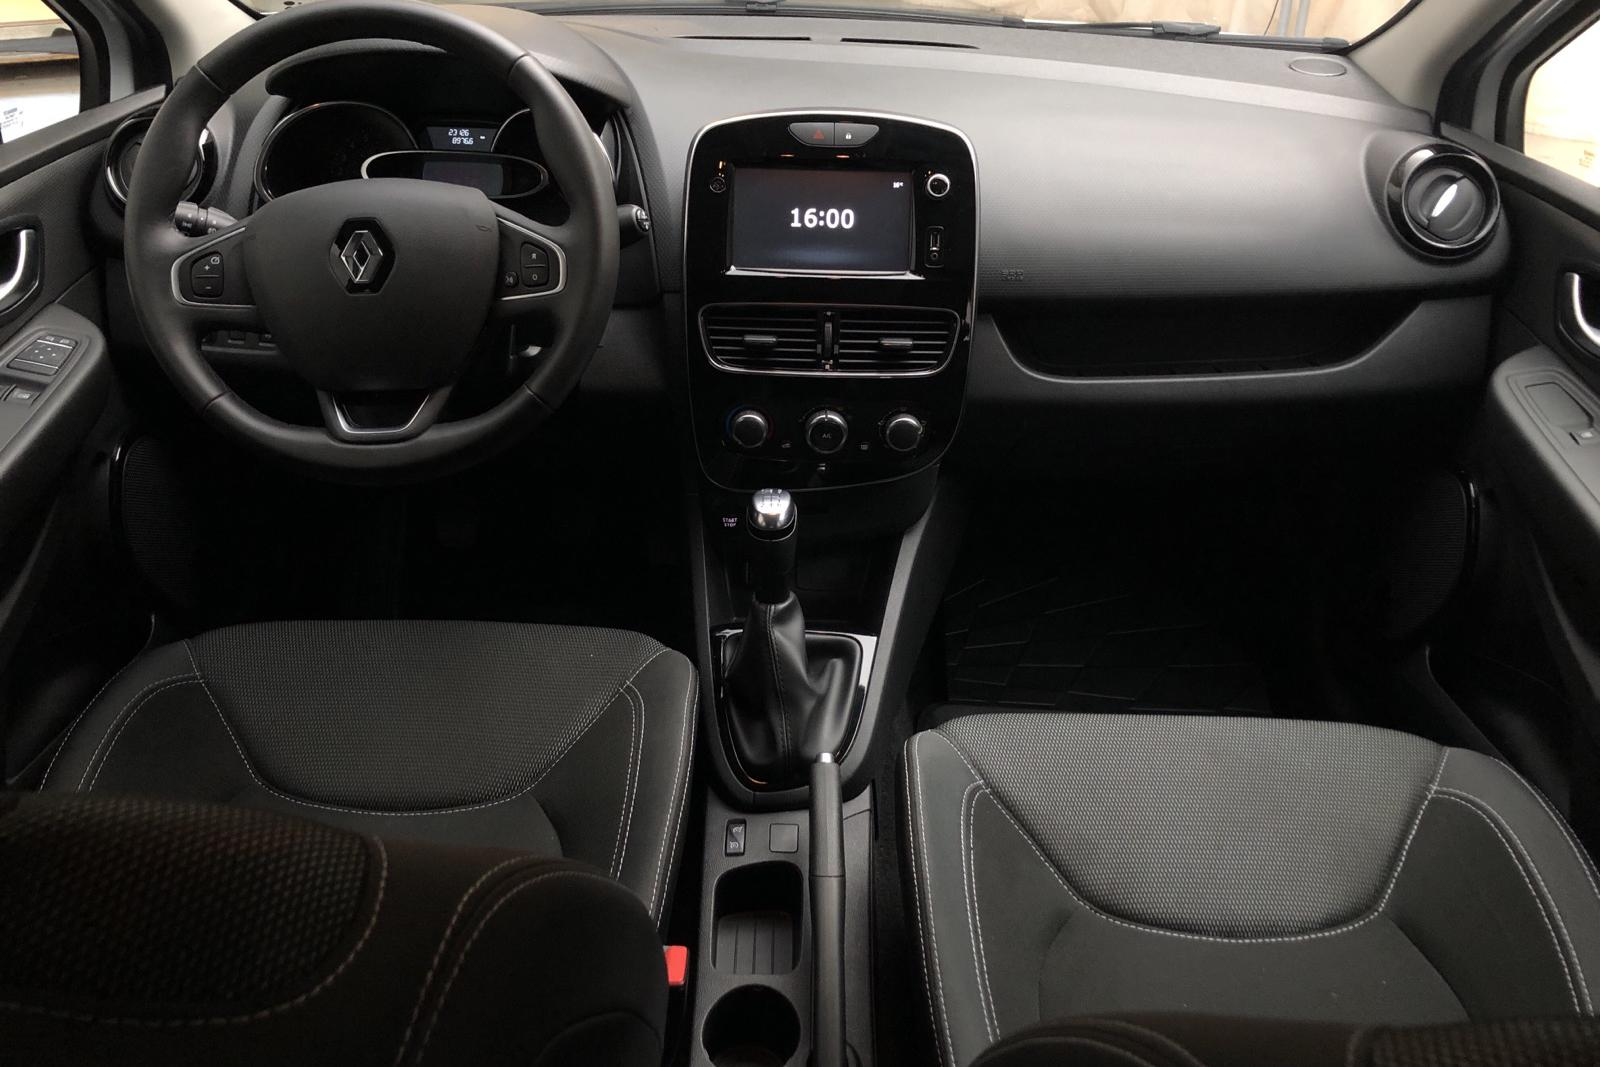 Renault Clio IV 0.9 TCe 90 5dr (90hk) - 22 000 km - white - 2018